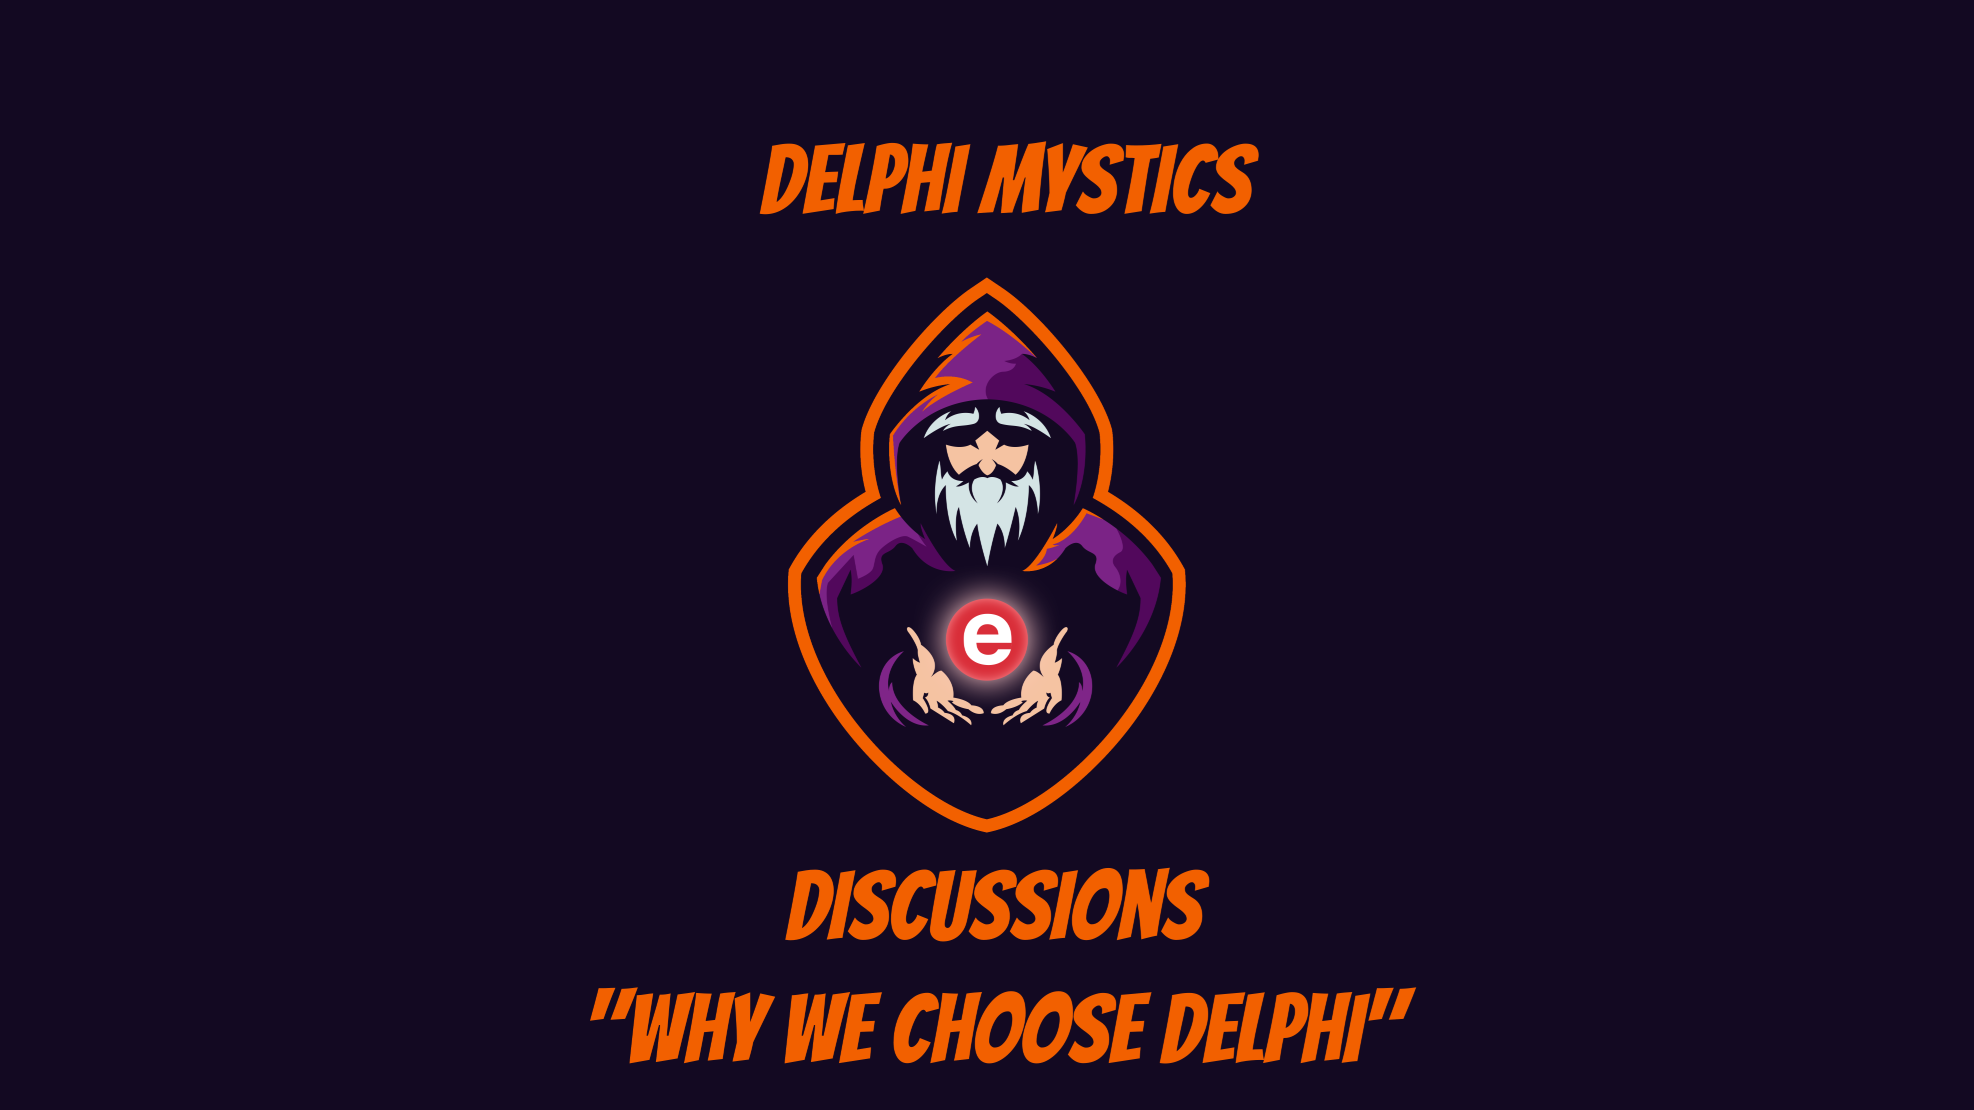 Discussion Episode - Why We Choose Delphi